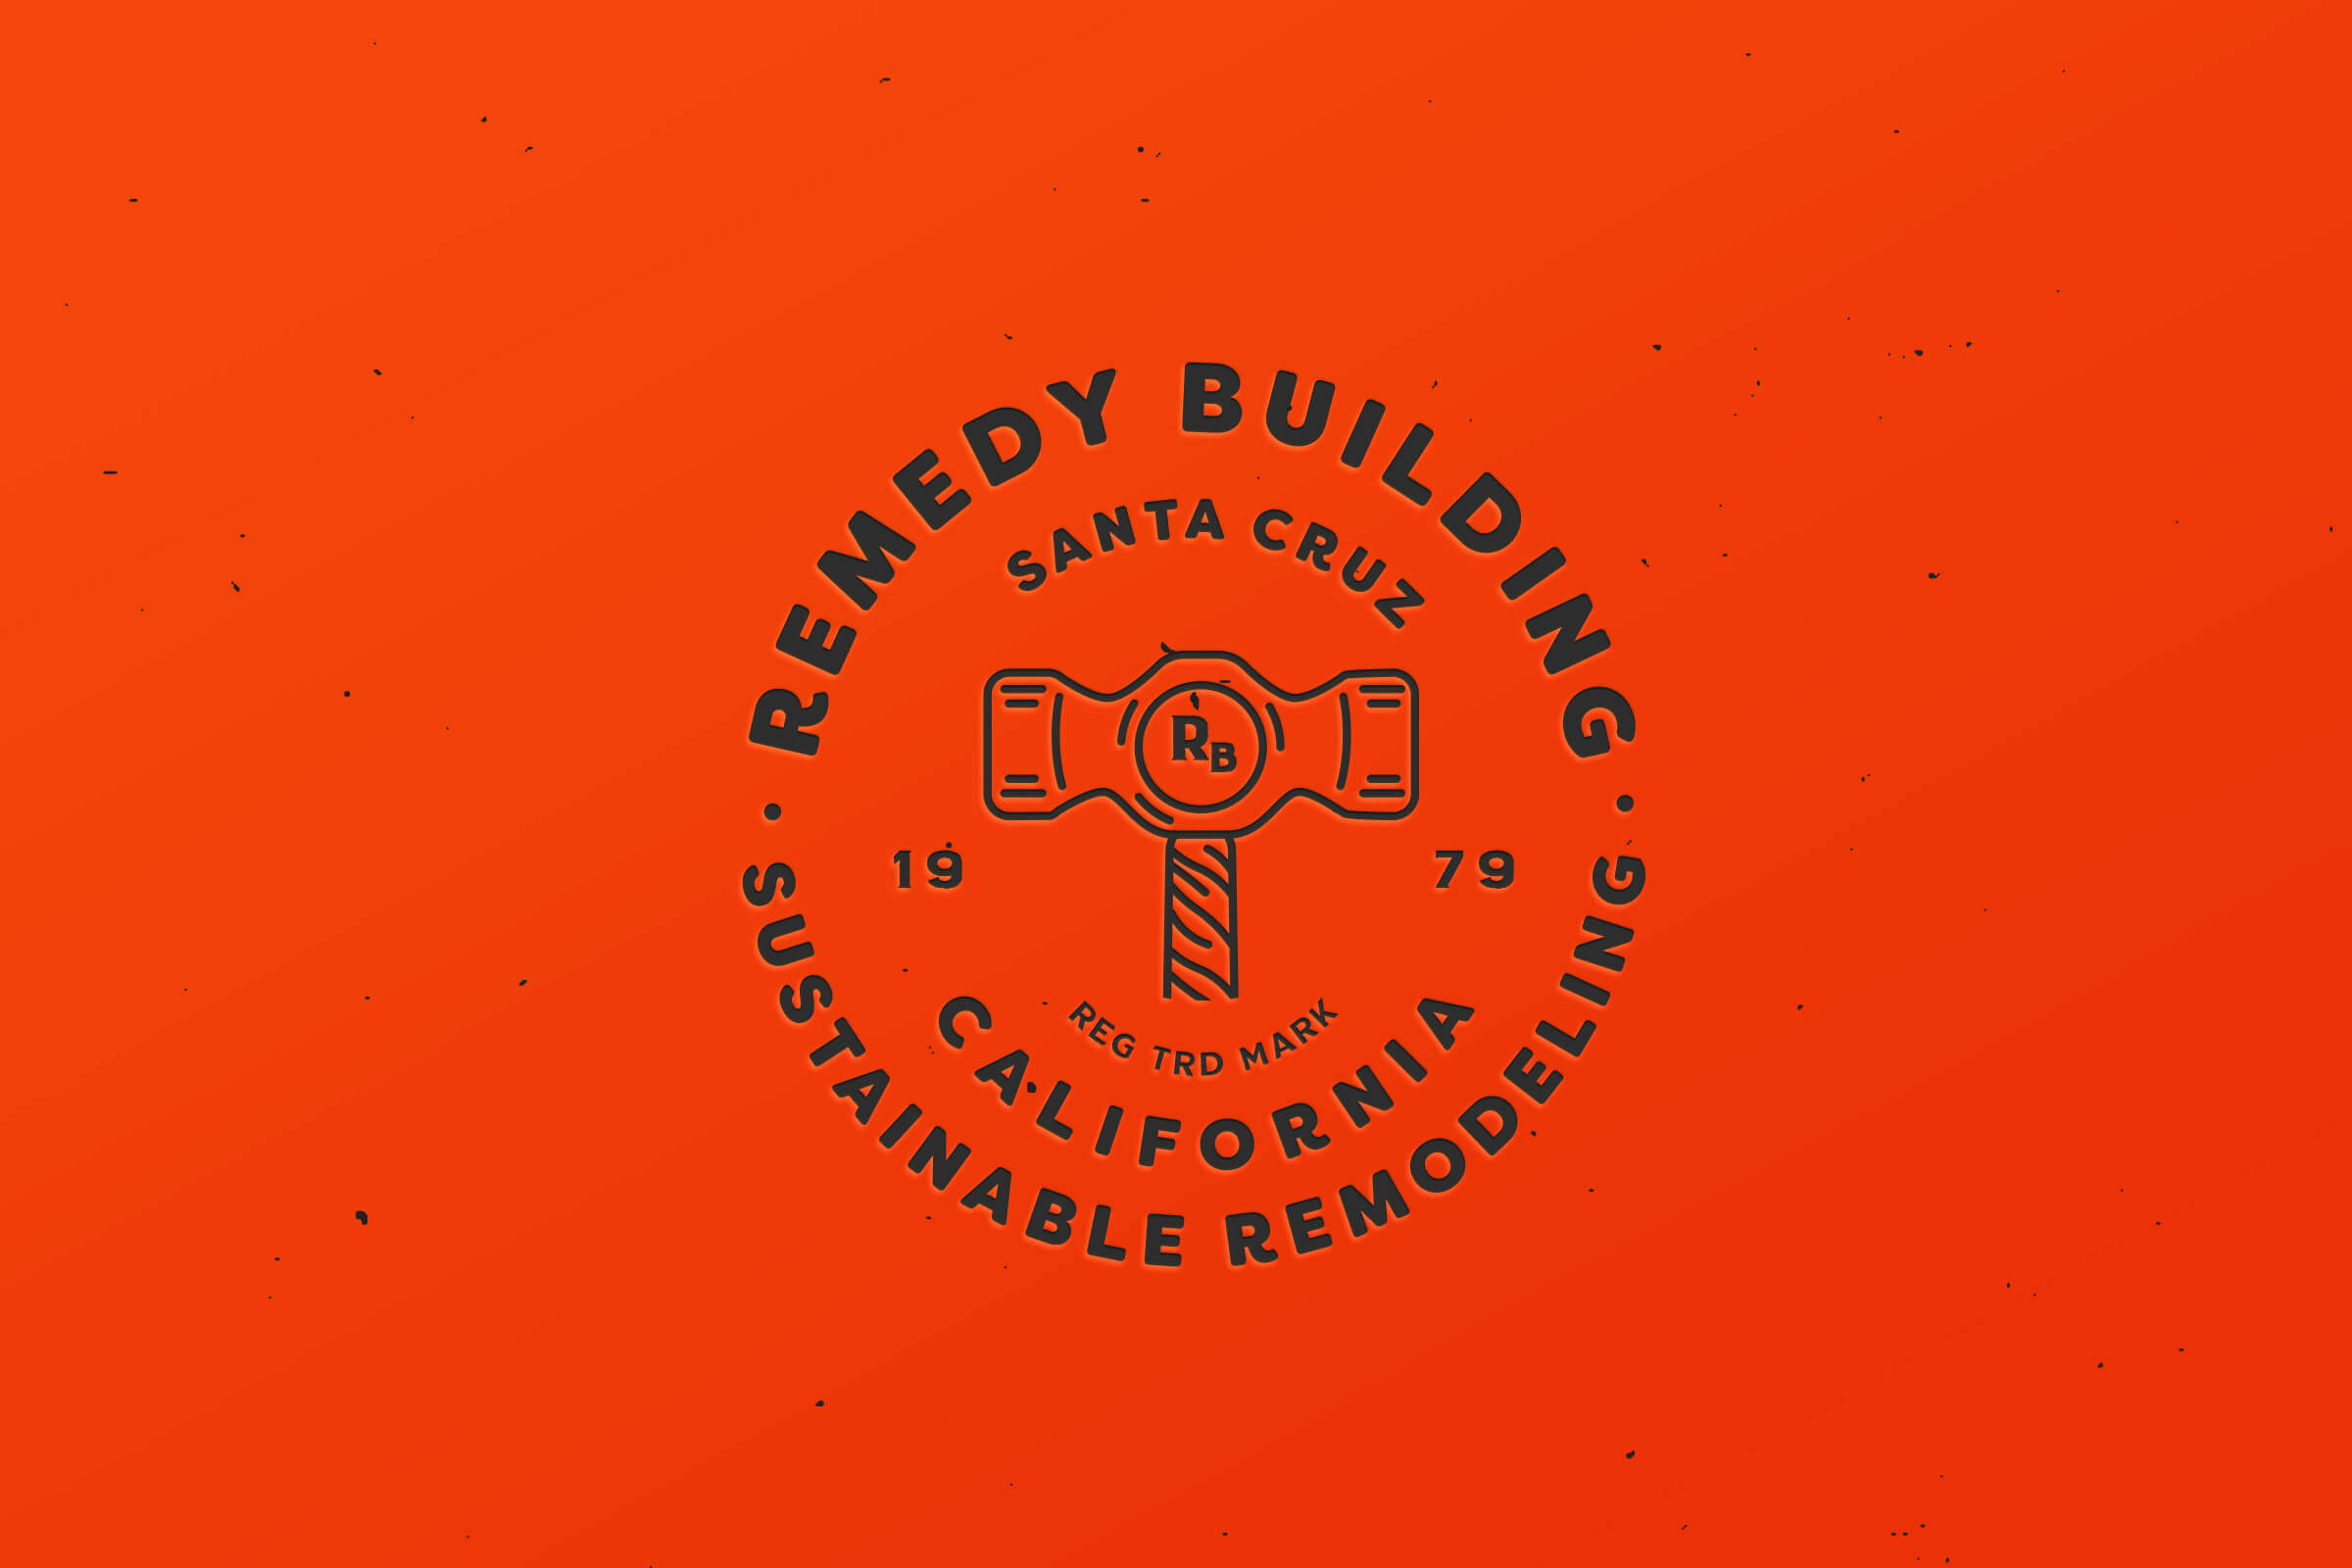 Remedy Building